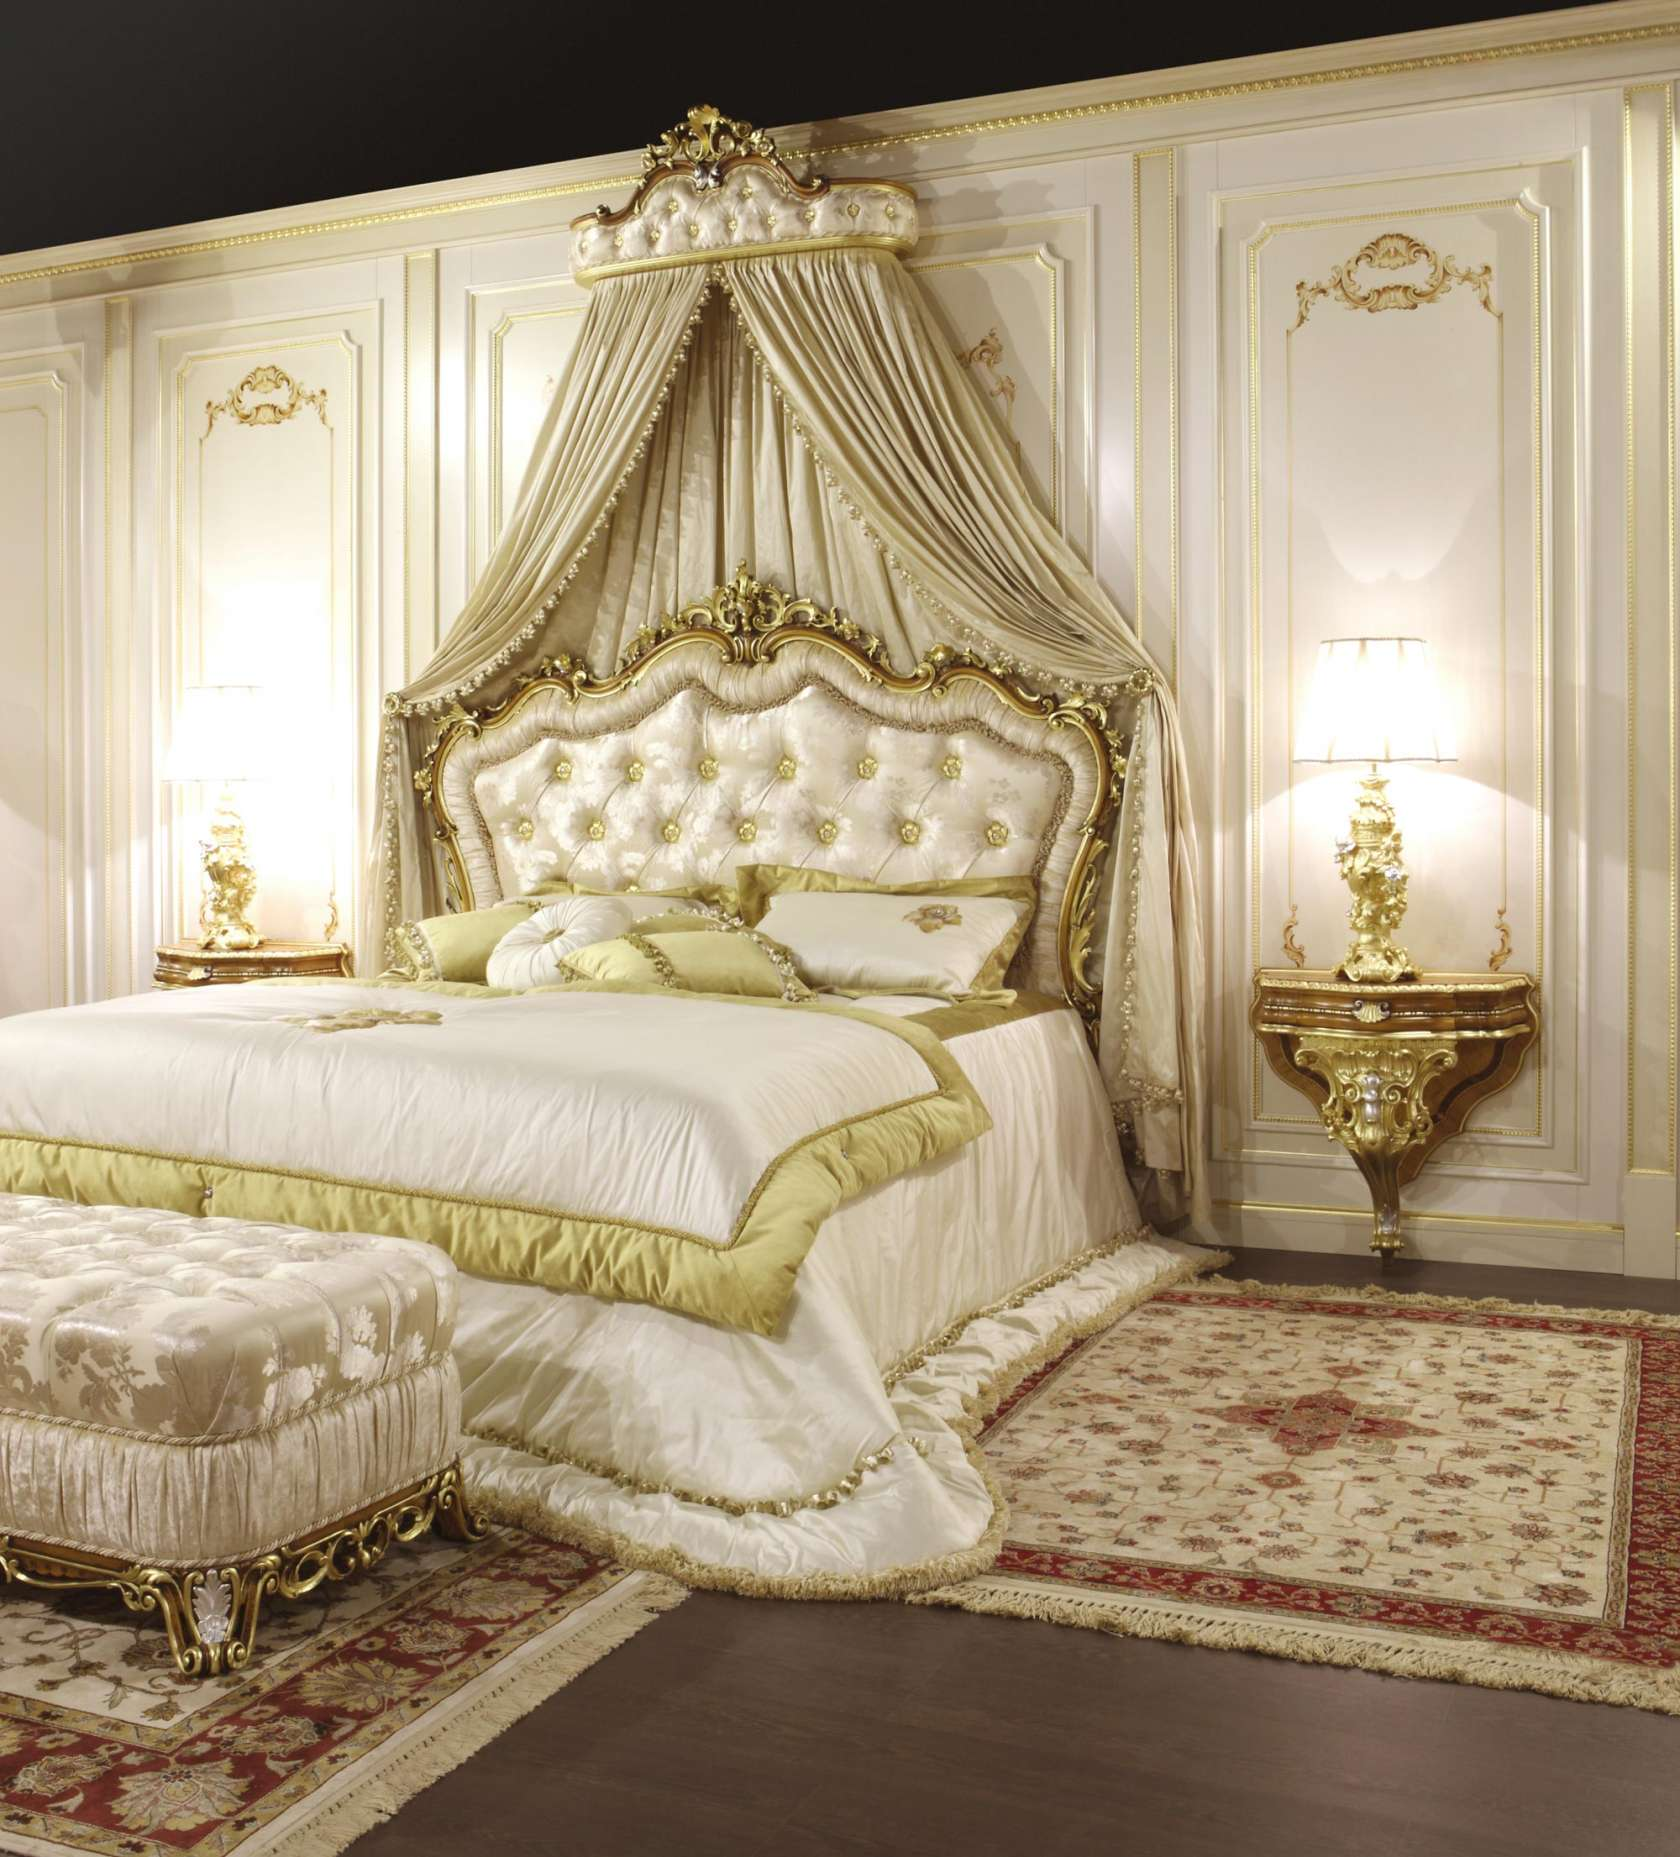 Baroque Classic Bedroom Art Vimercati Classic Furniture